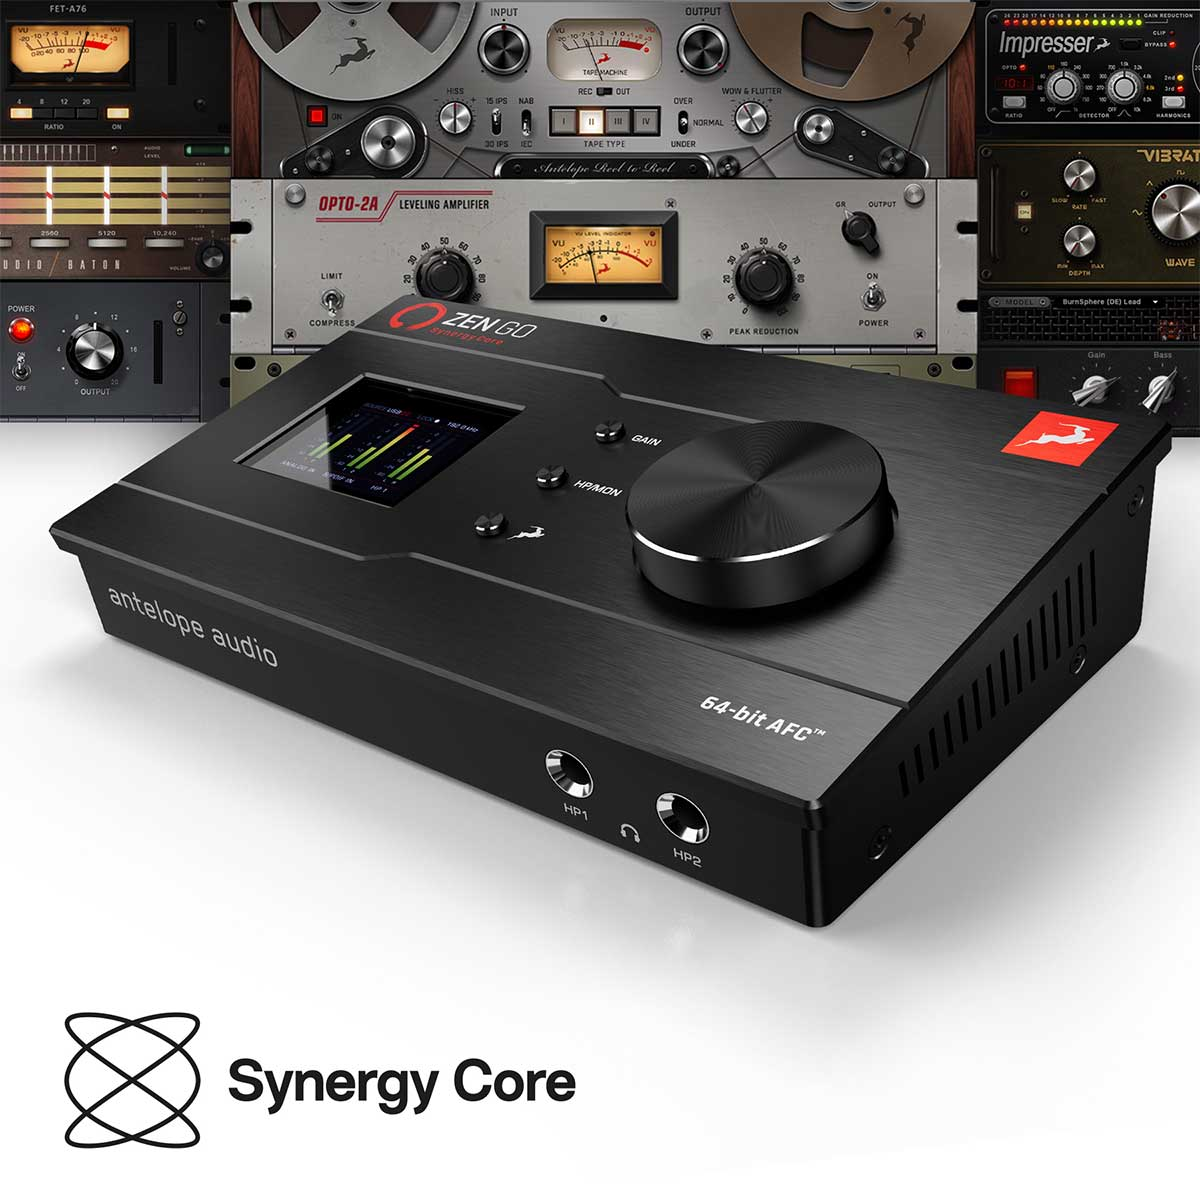 Antelope Audio Zen Go Synergy Core